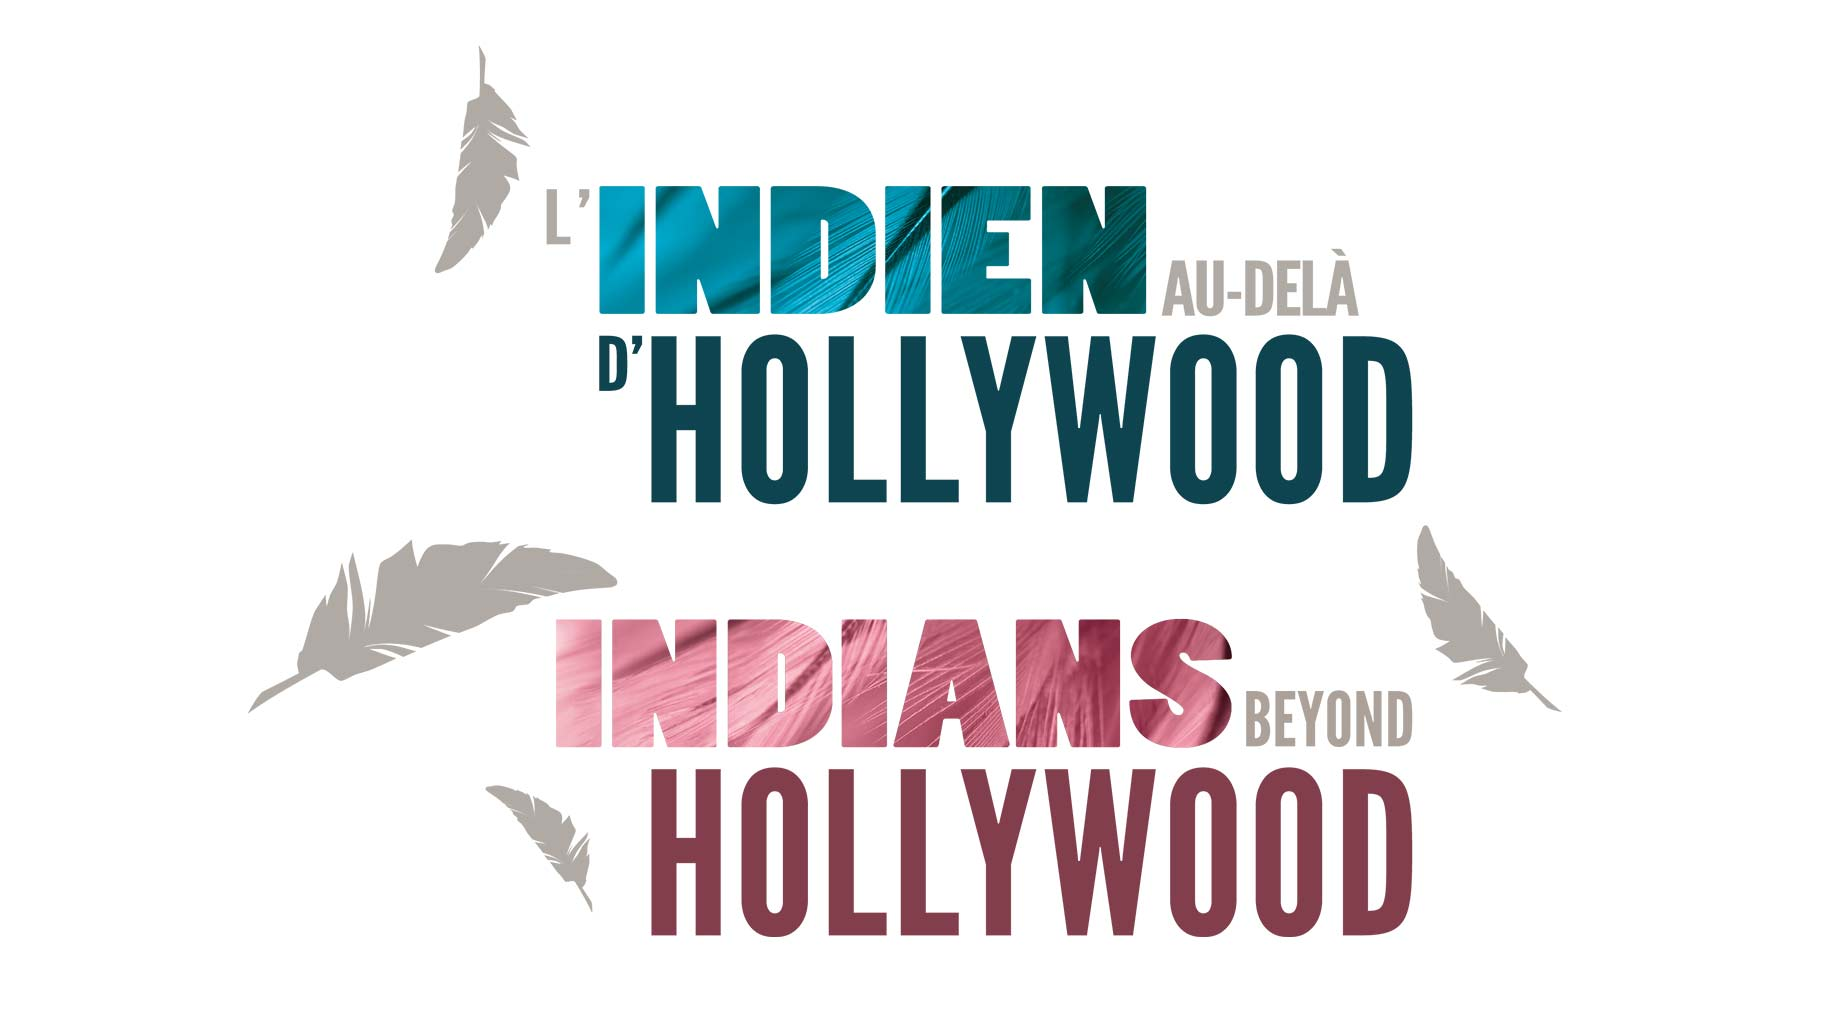 L'Indien au-delà d'Hollywood